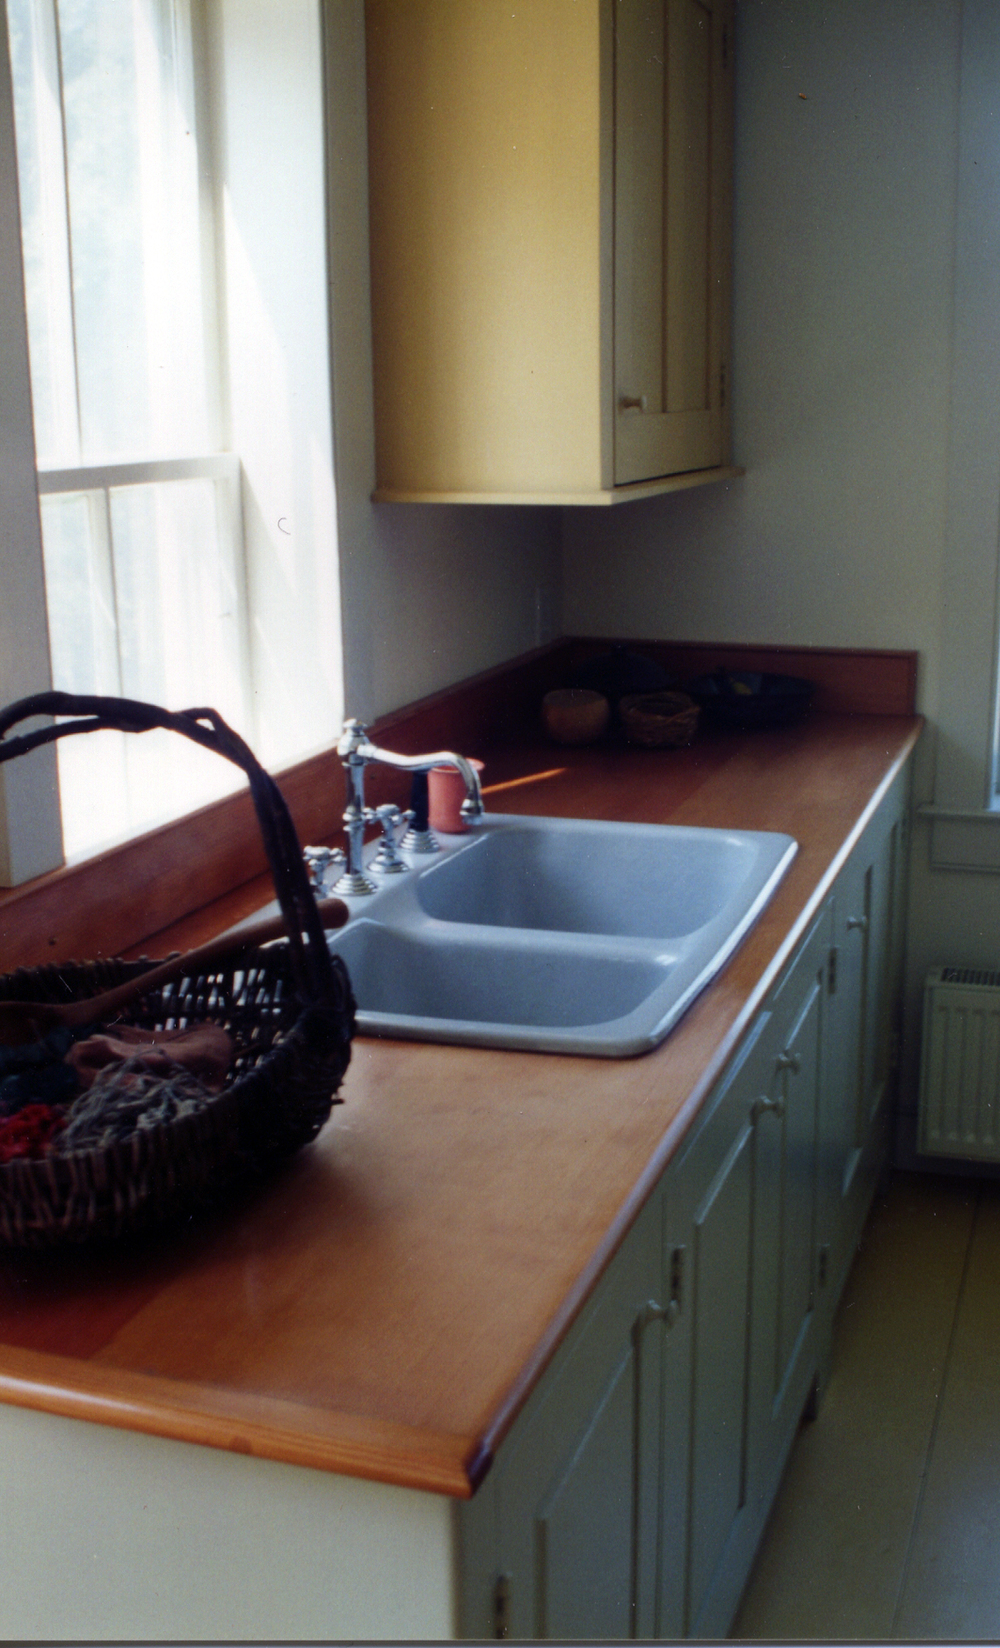 Brookside_sink_closeup.jpg